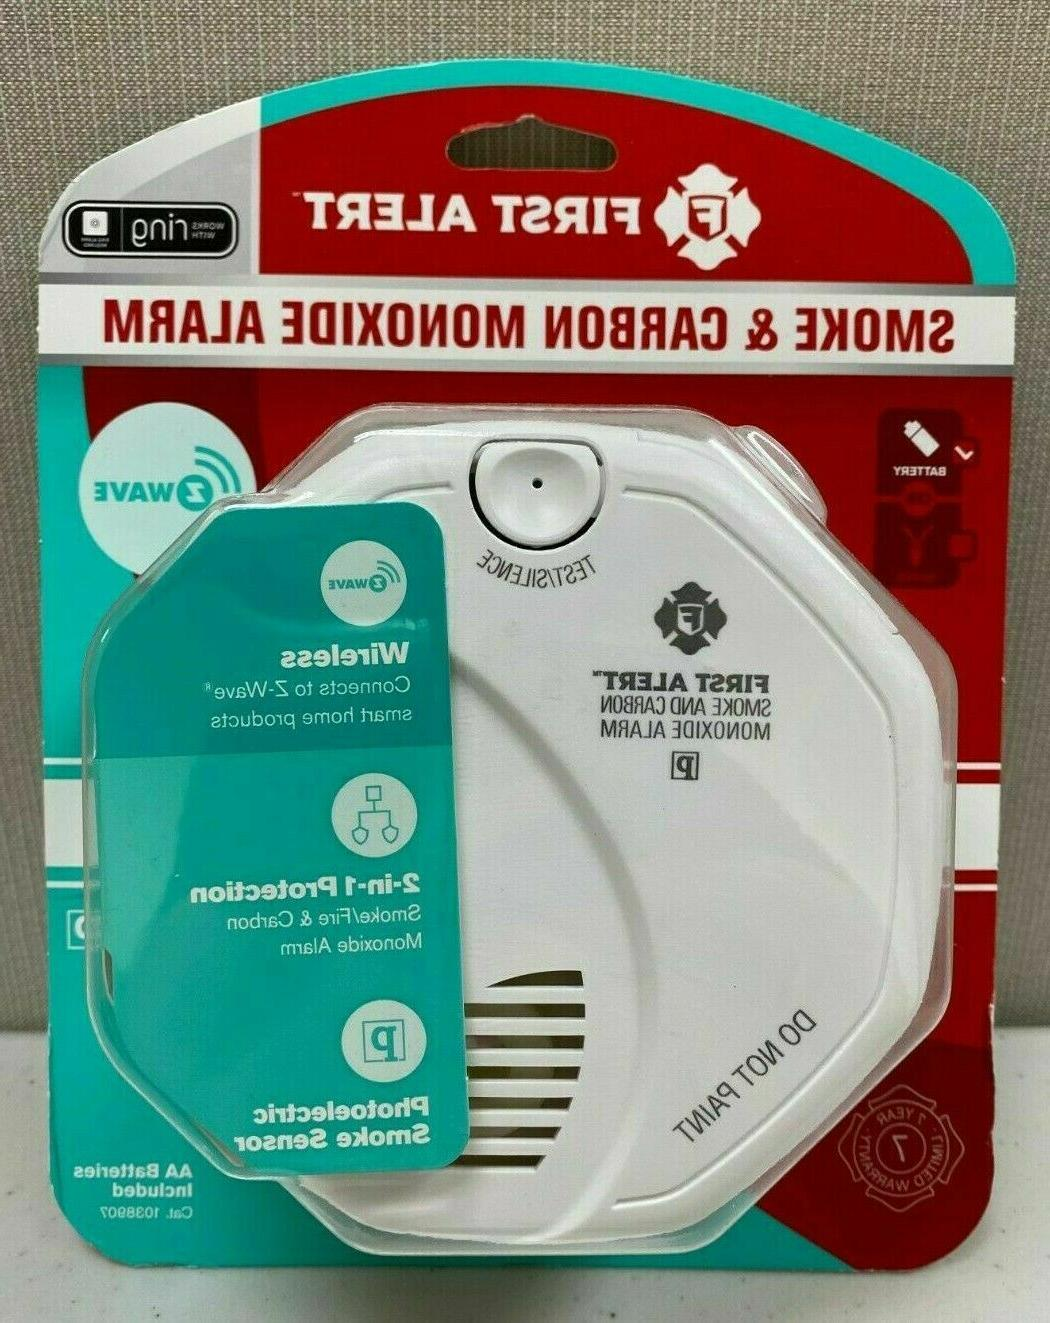 First Alert Z-Wave Smoke and Carbon Monoxide Alarm - Battery